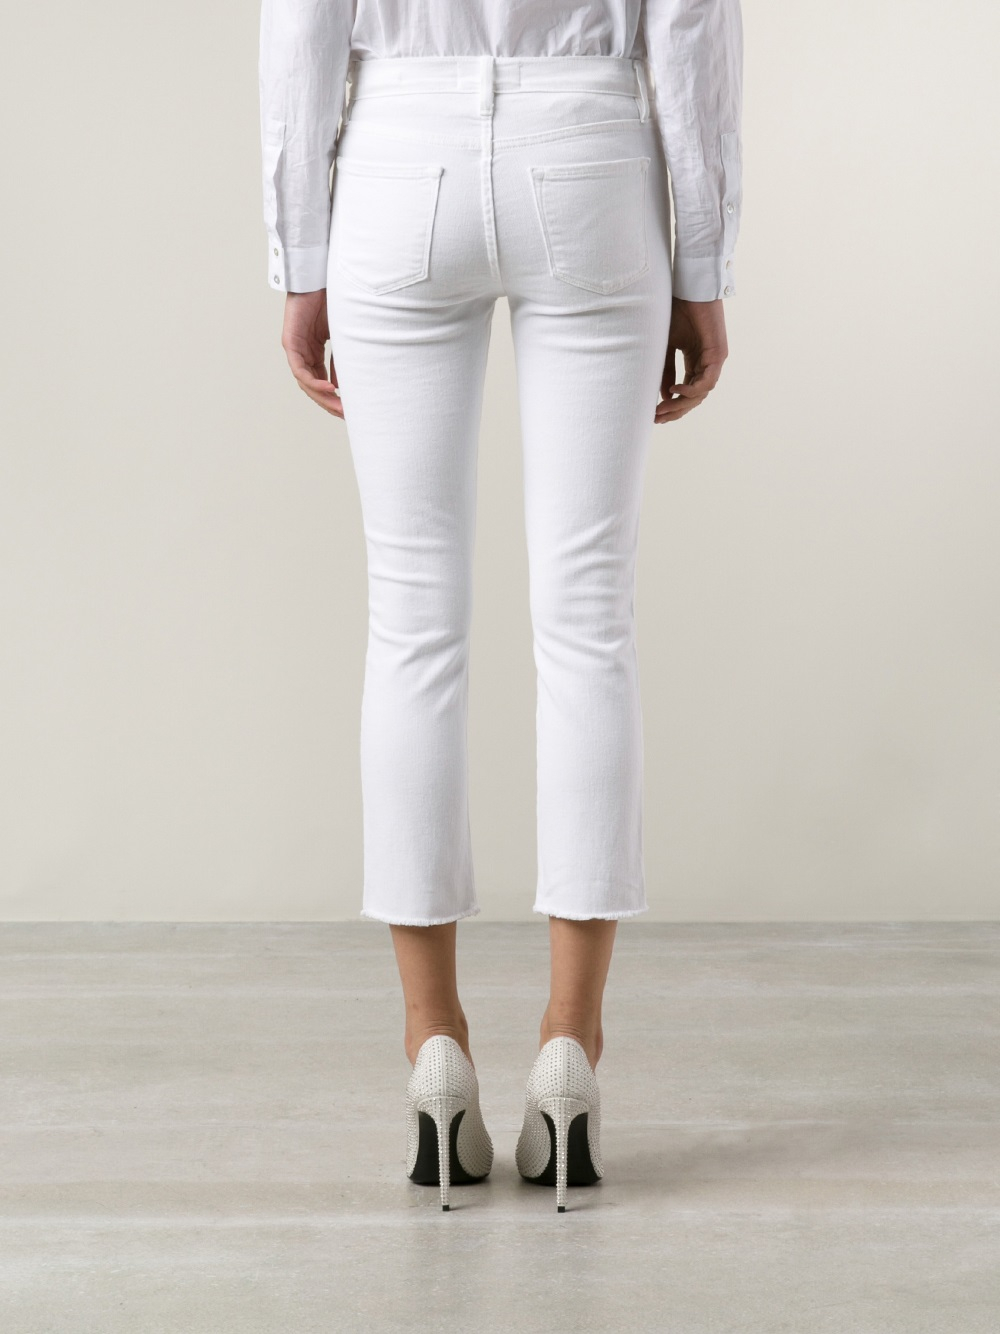 Frame Le High Skinny Jeans in White | Lyst